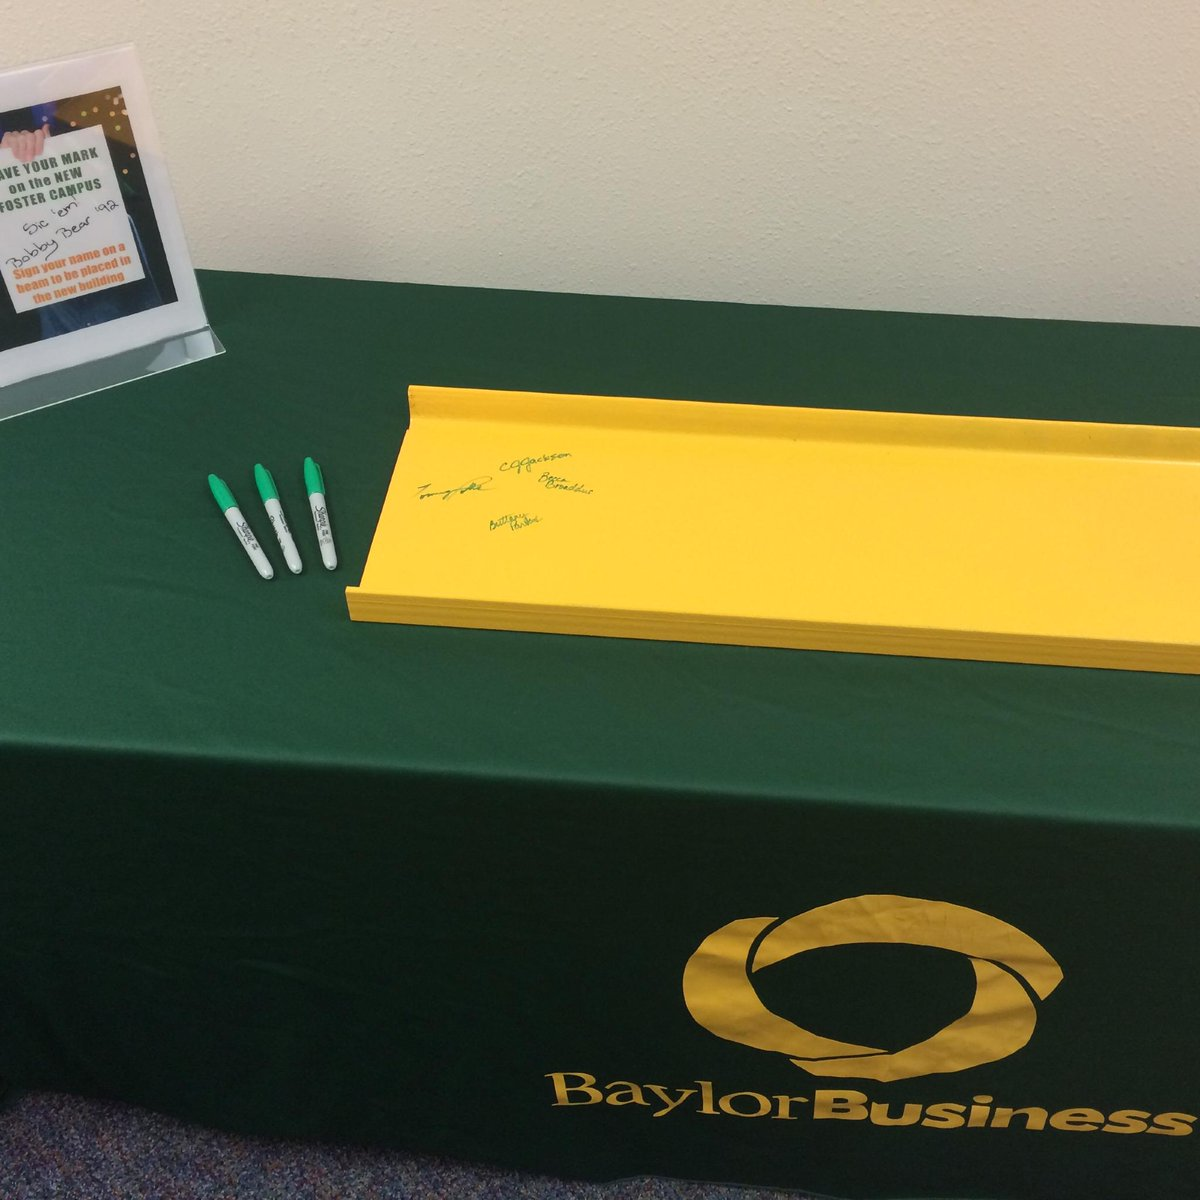 Want to leave your mark on #Baylor's new #FosterCampus? Stop by the b-school lobby Mon-Wed from 2-4 to sign a beam! http://t.co/c5LhNM36jD